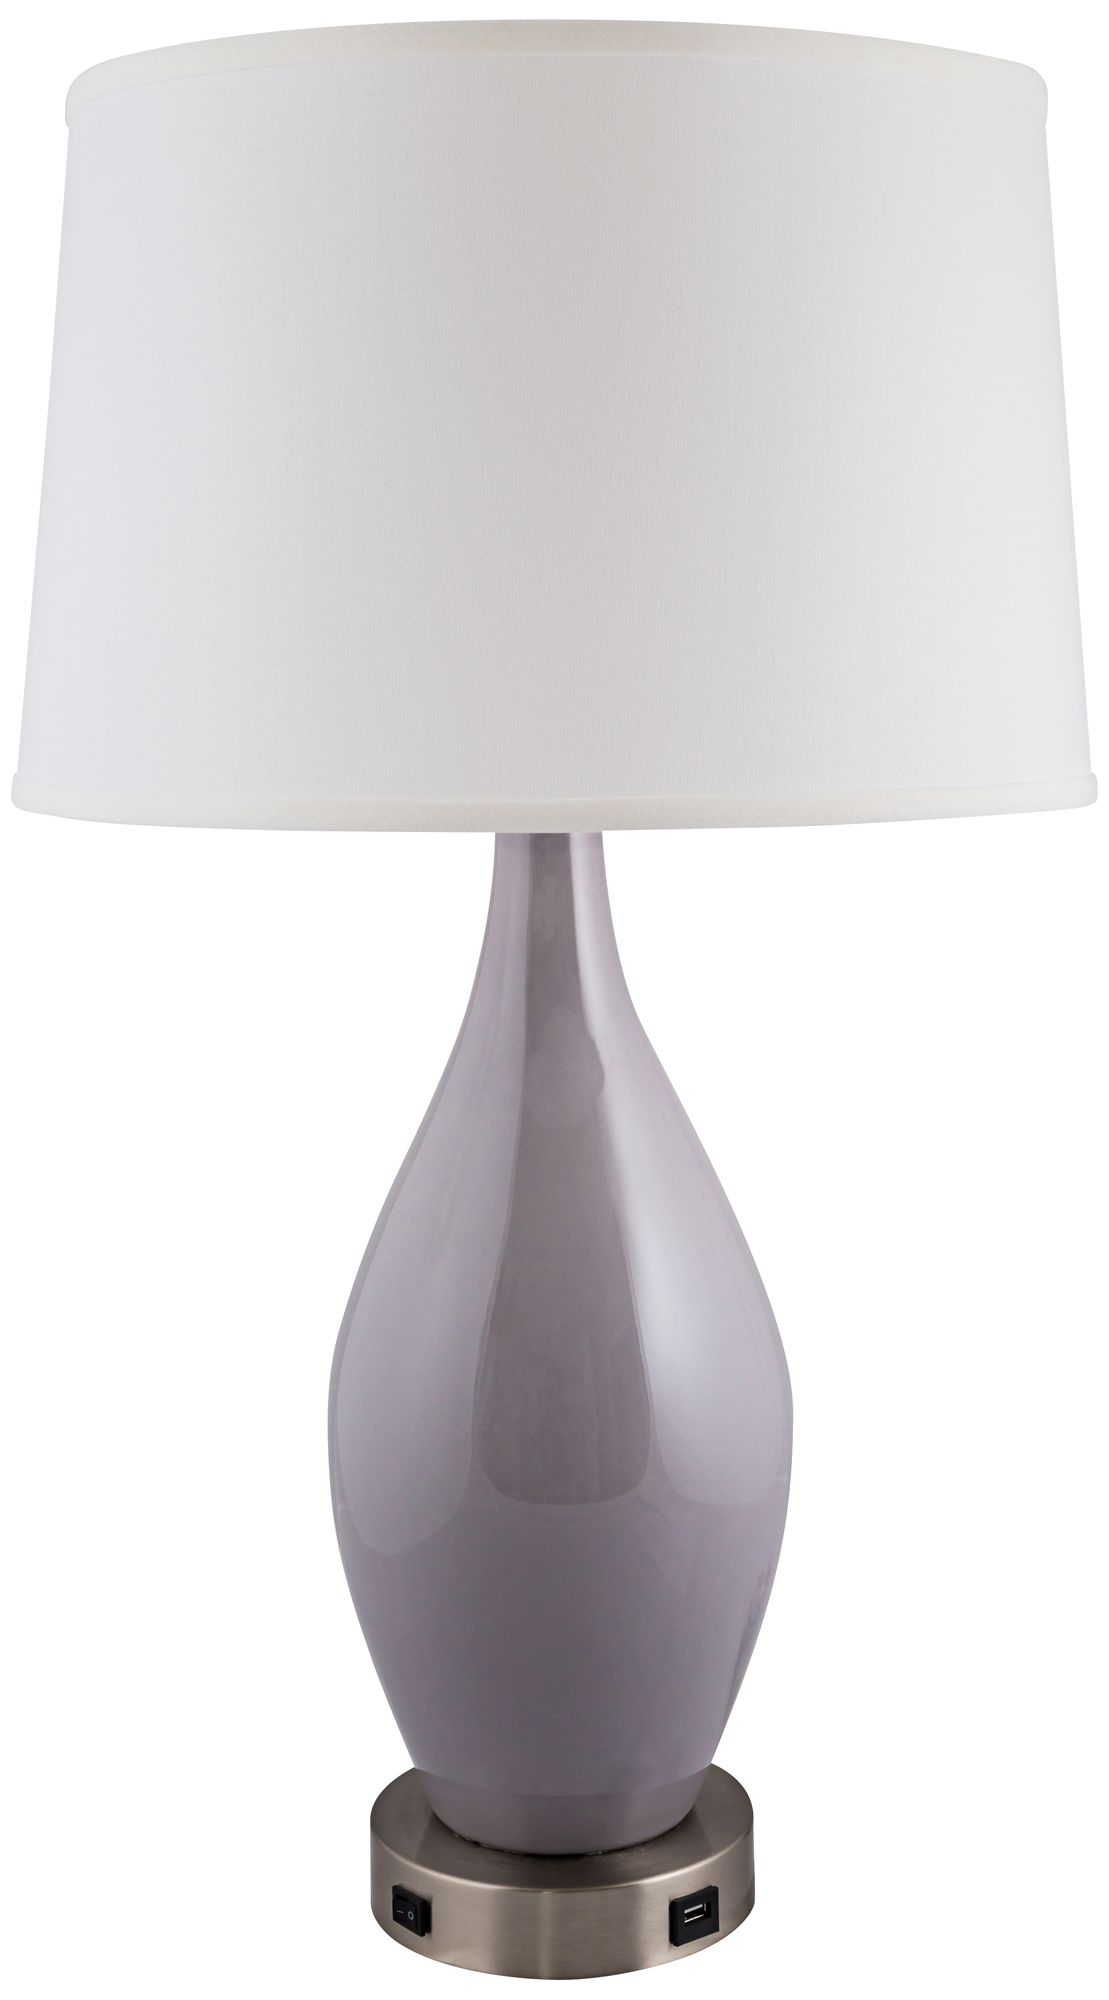 Burrough Swanky Gray Table Lamp With Outlet And USB Port   #36G68 | Lamps  Plus